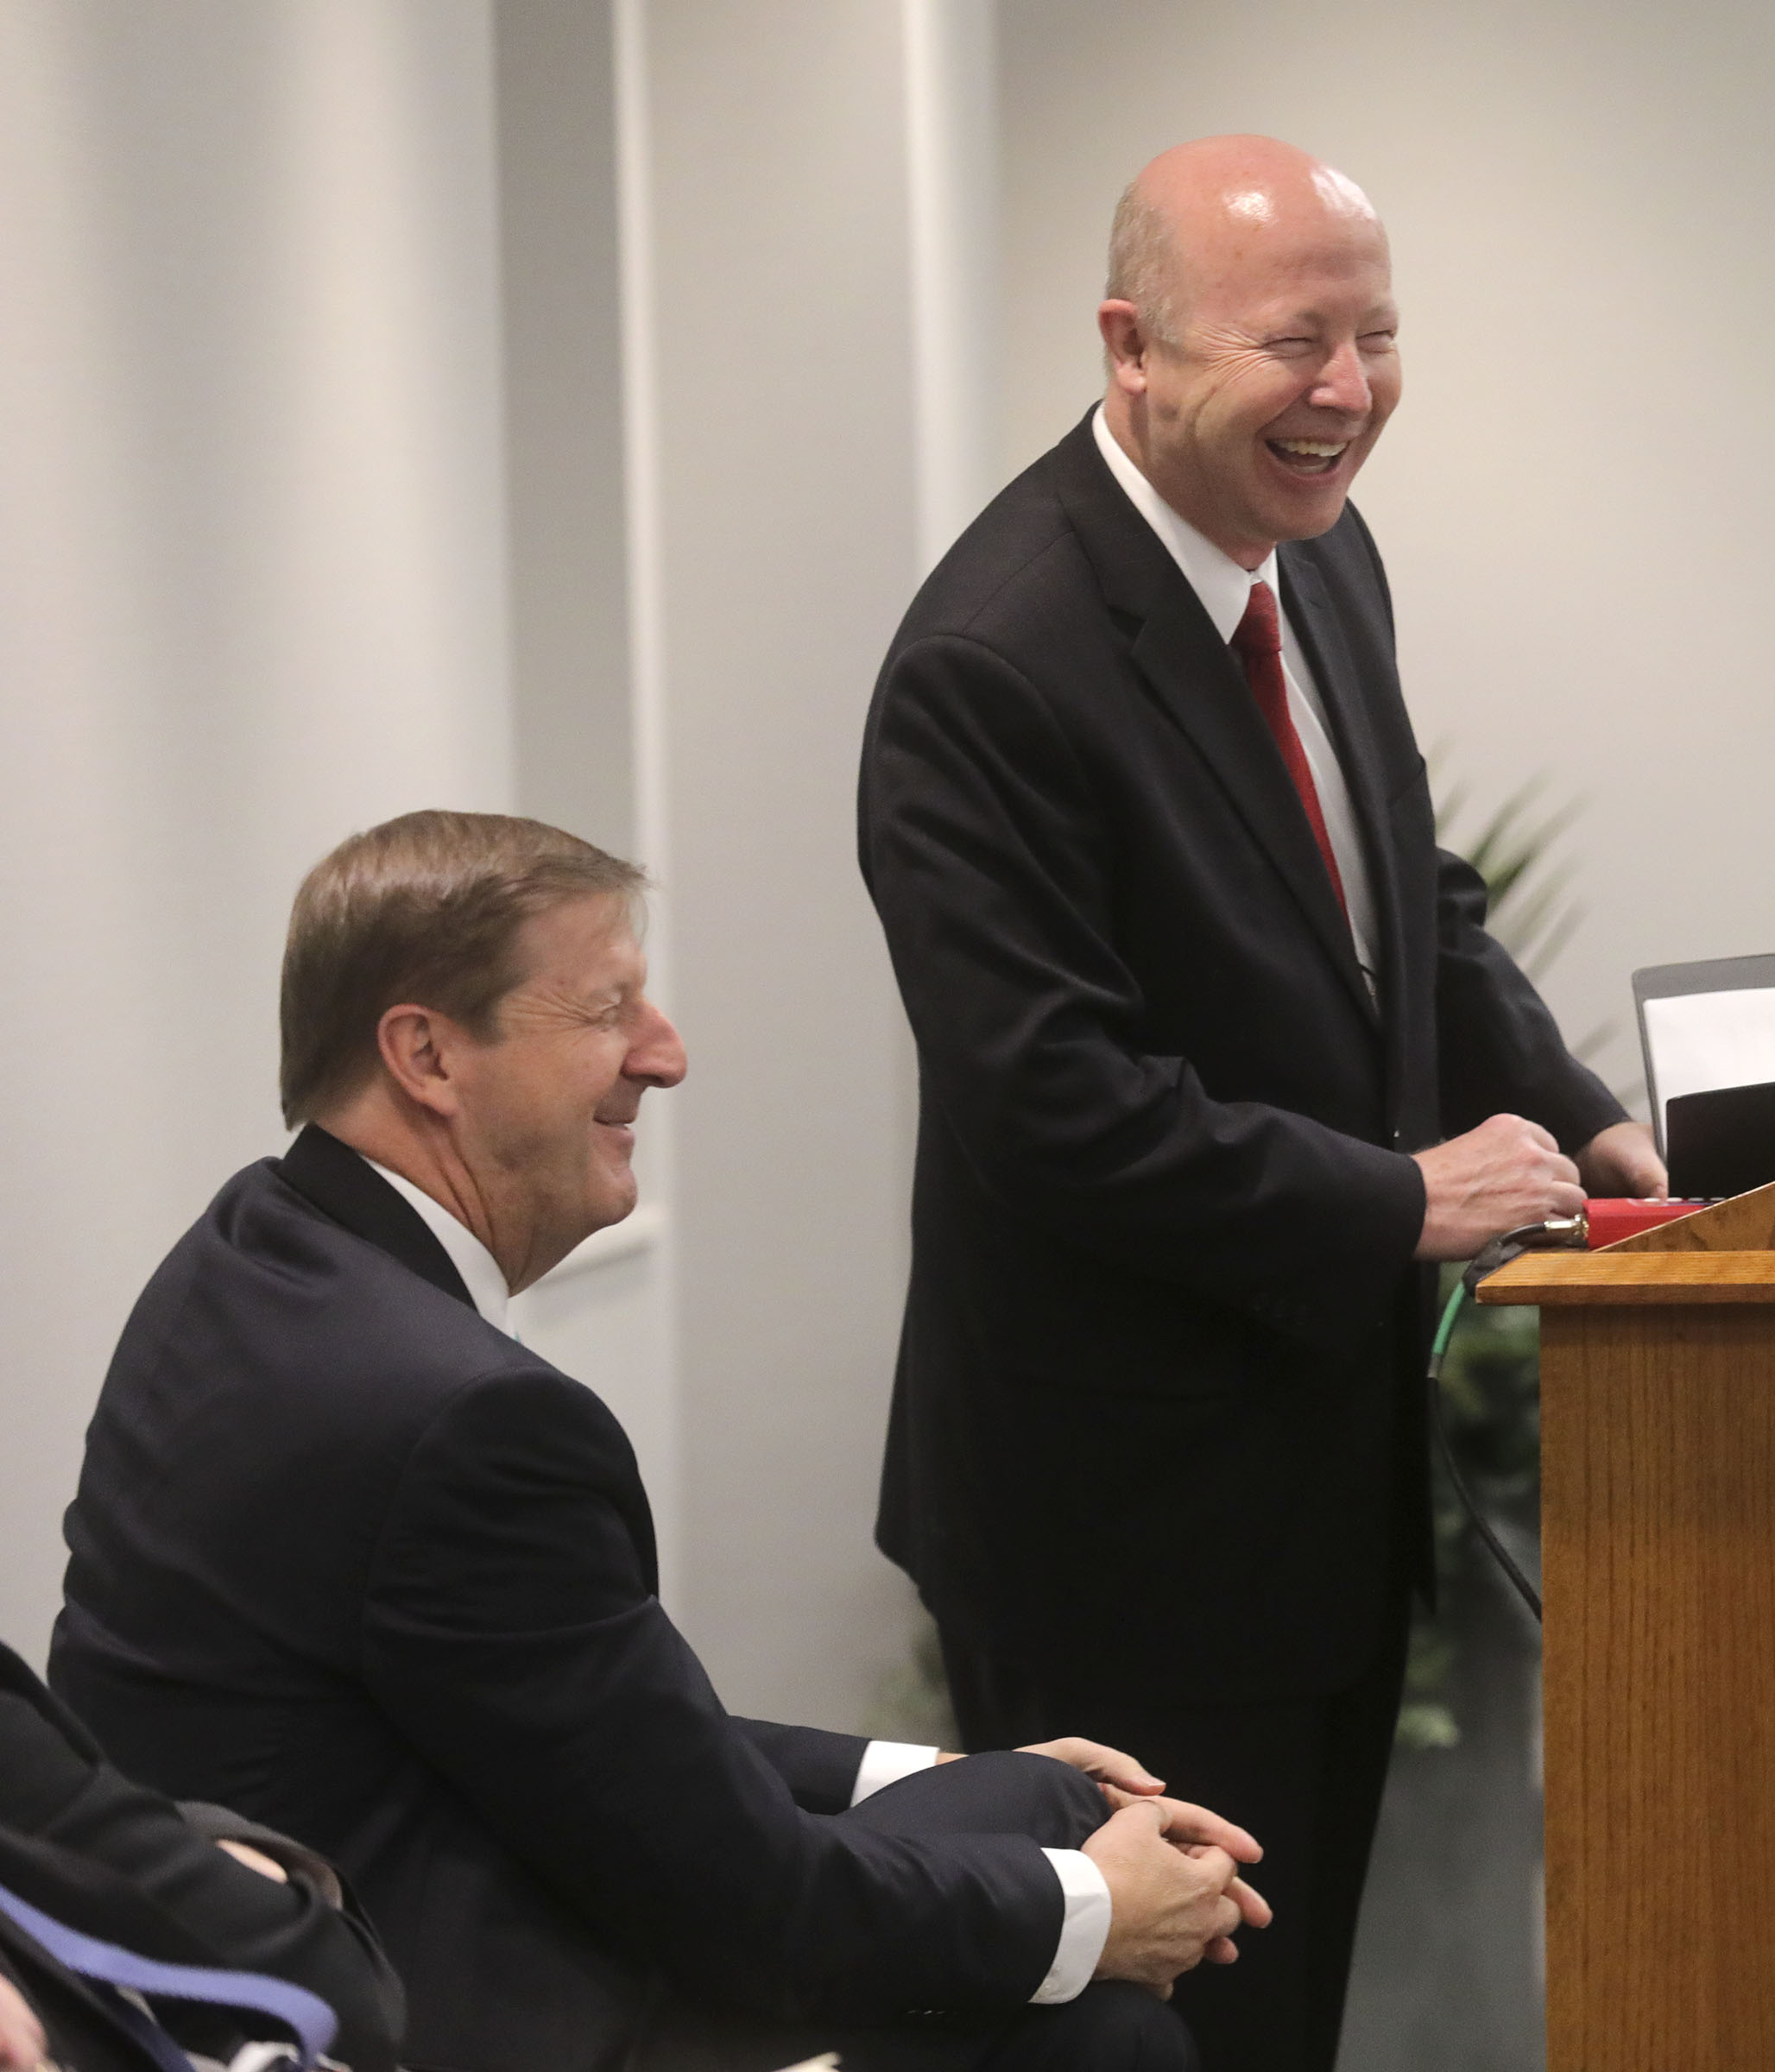 Steve Rockwood, FamilySearch CEO, left, and Richard E. Turley, right, former managing director of the Family History Department, laugh during the FamilySearch 125th anniversary celebration at the Family History Library in Salt Lake City on Wednesday, Nov. 13, 2019.